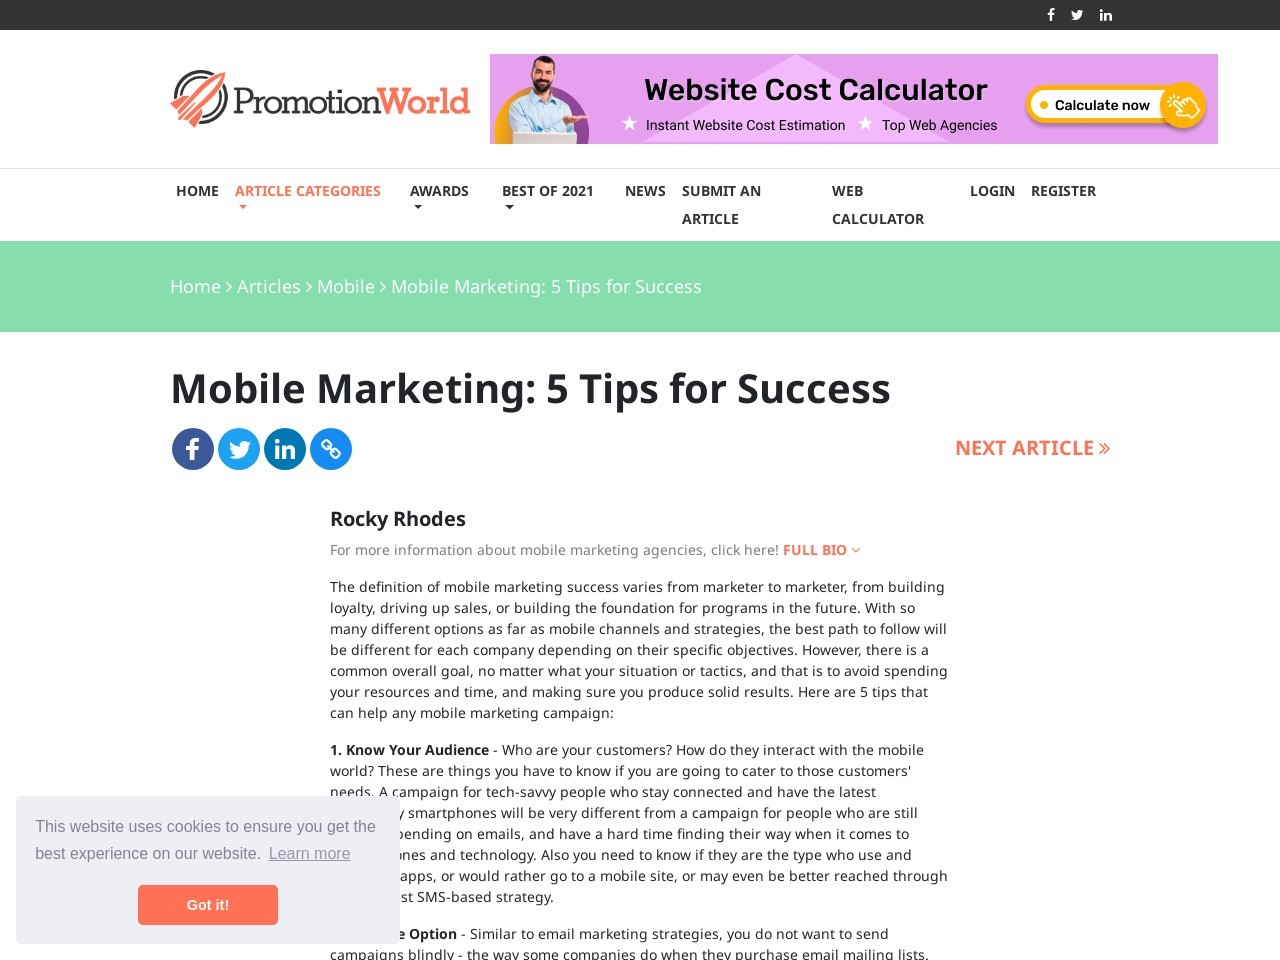 Mobile Marketing: 5 Tips for Success